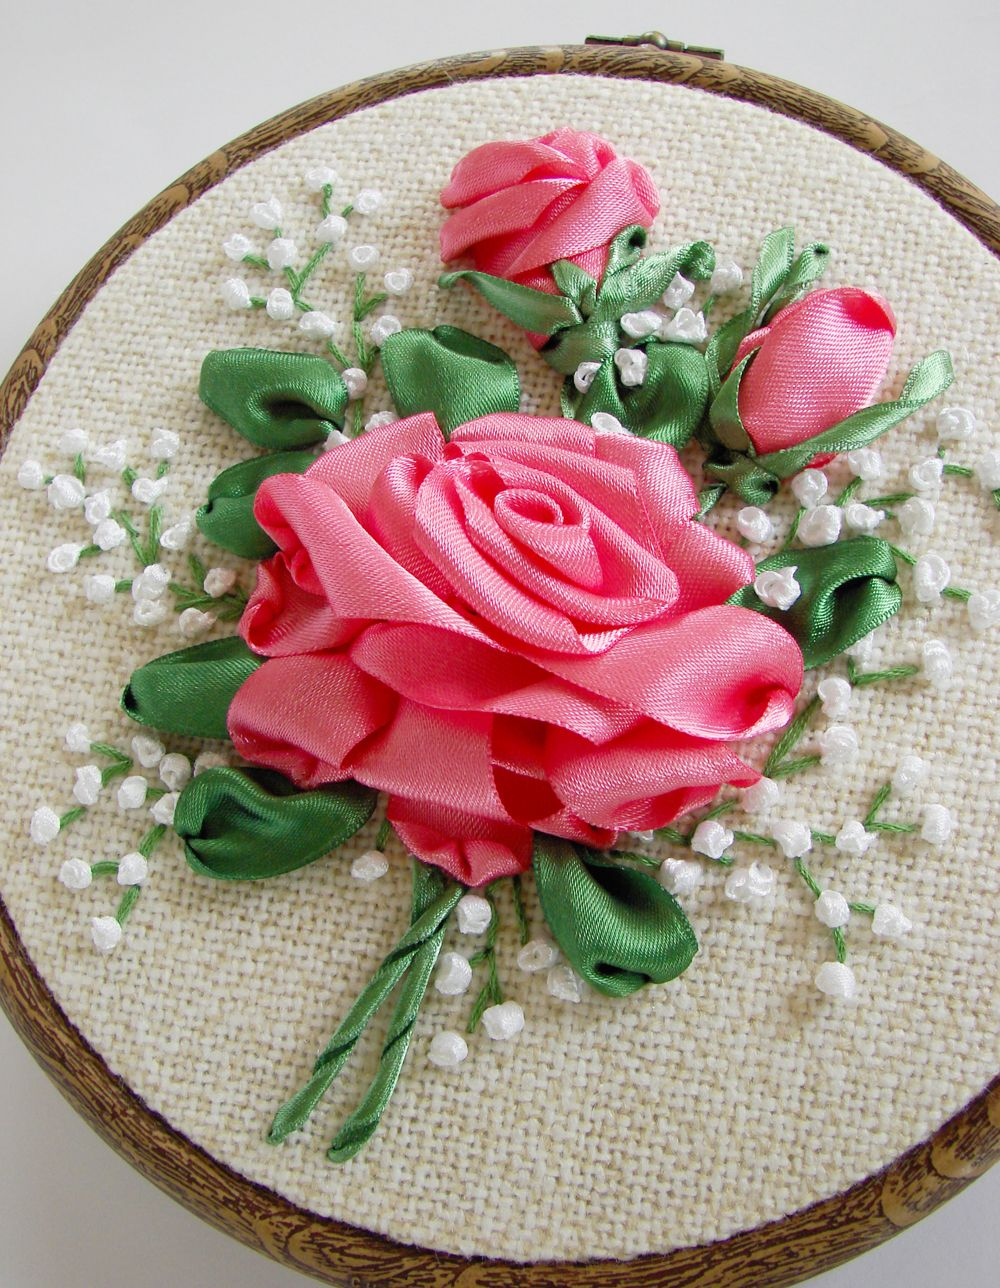 Ribbon Embroidery Flower Embroidery Kit Diy Craft Wall Hanging Art Decor